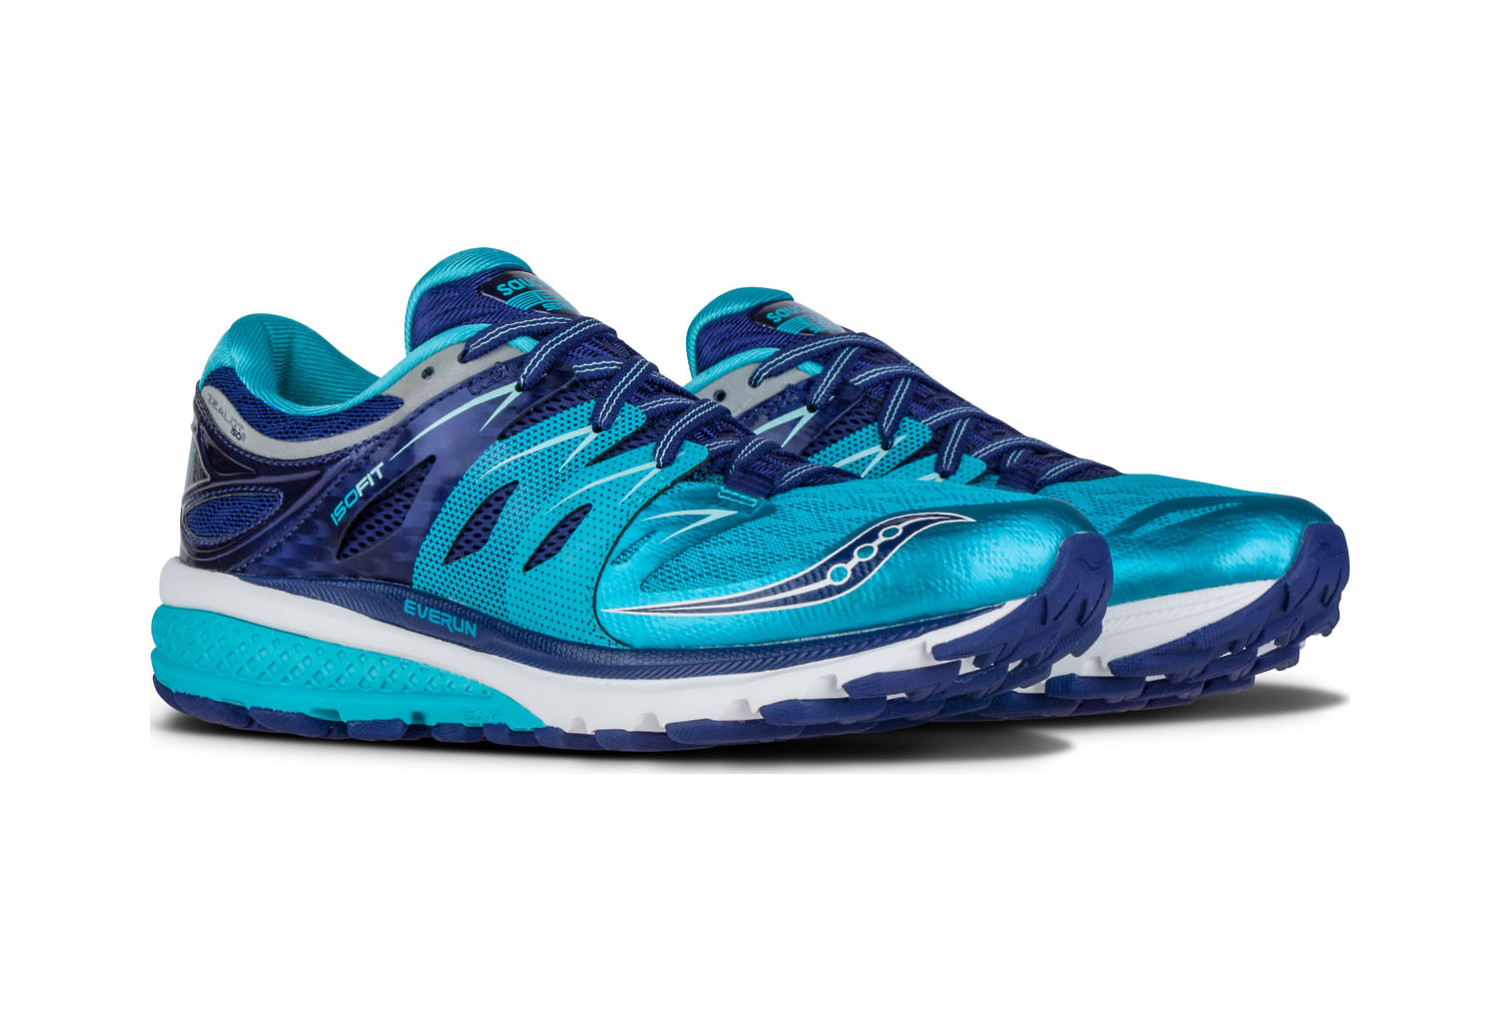 2 Blue Iso Running Silver Navy Saucony Shoes Womens Zealot O4Ex6qf